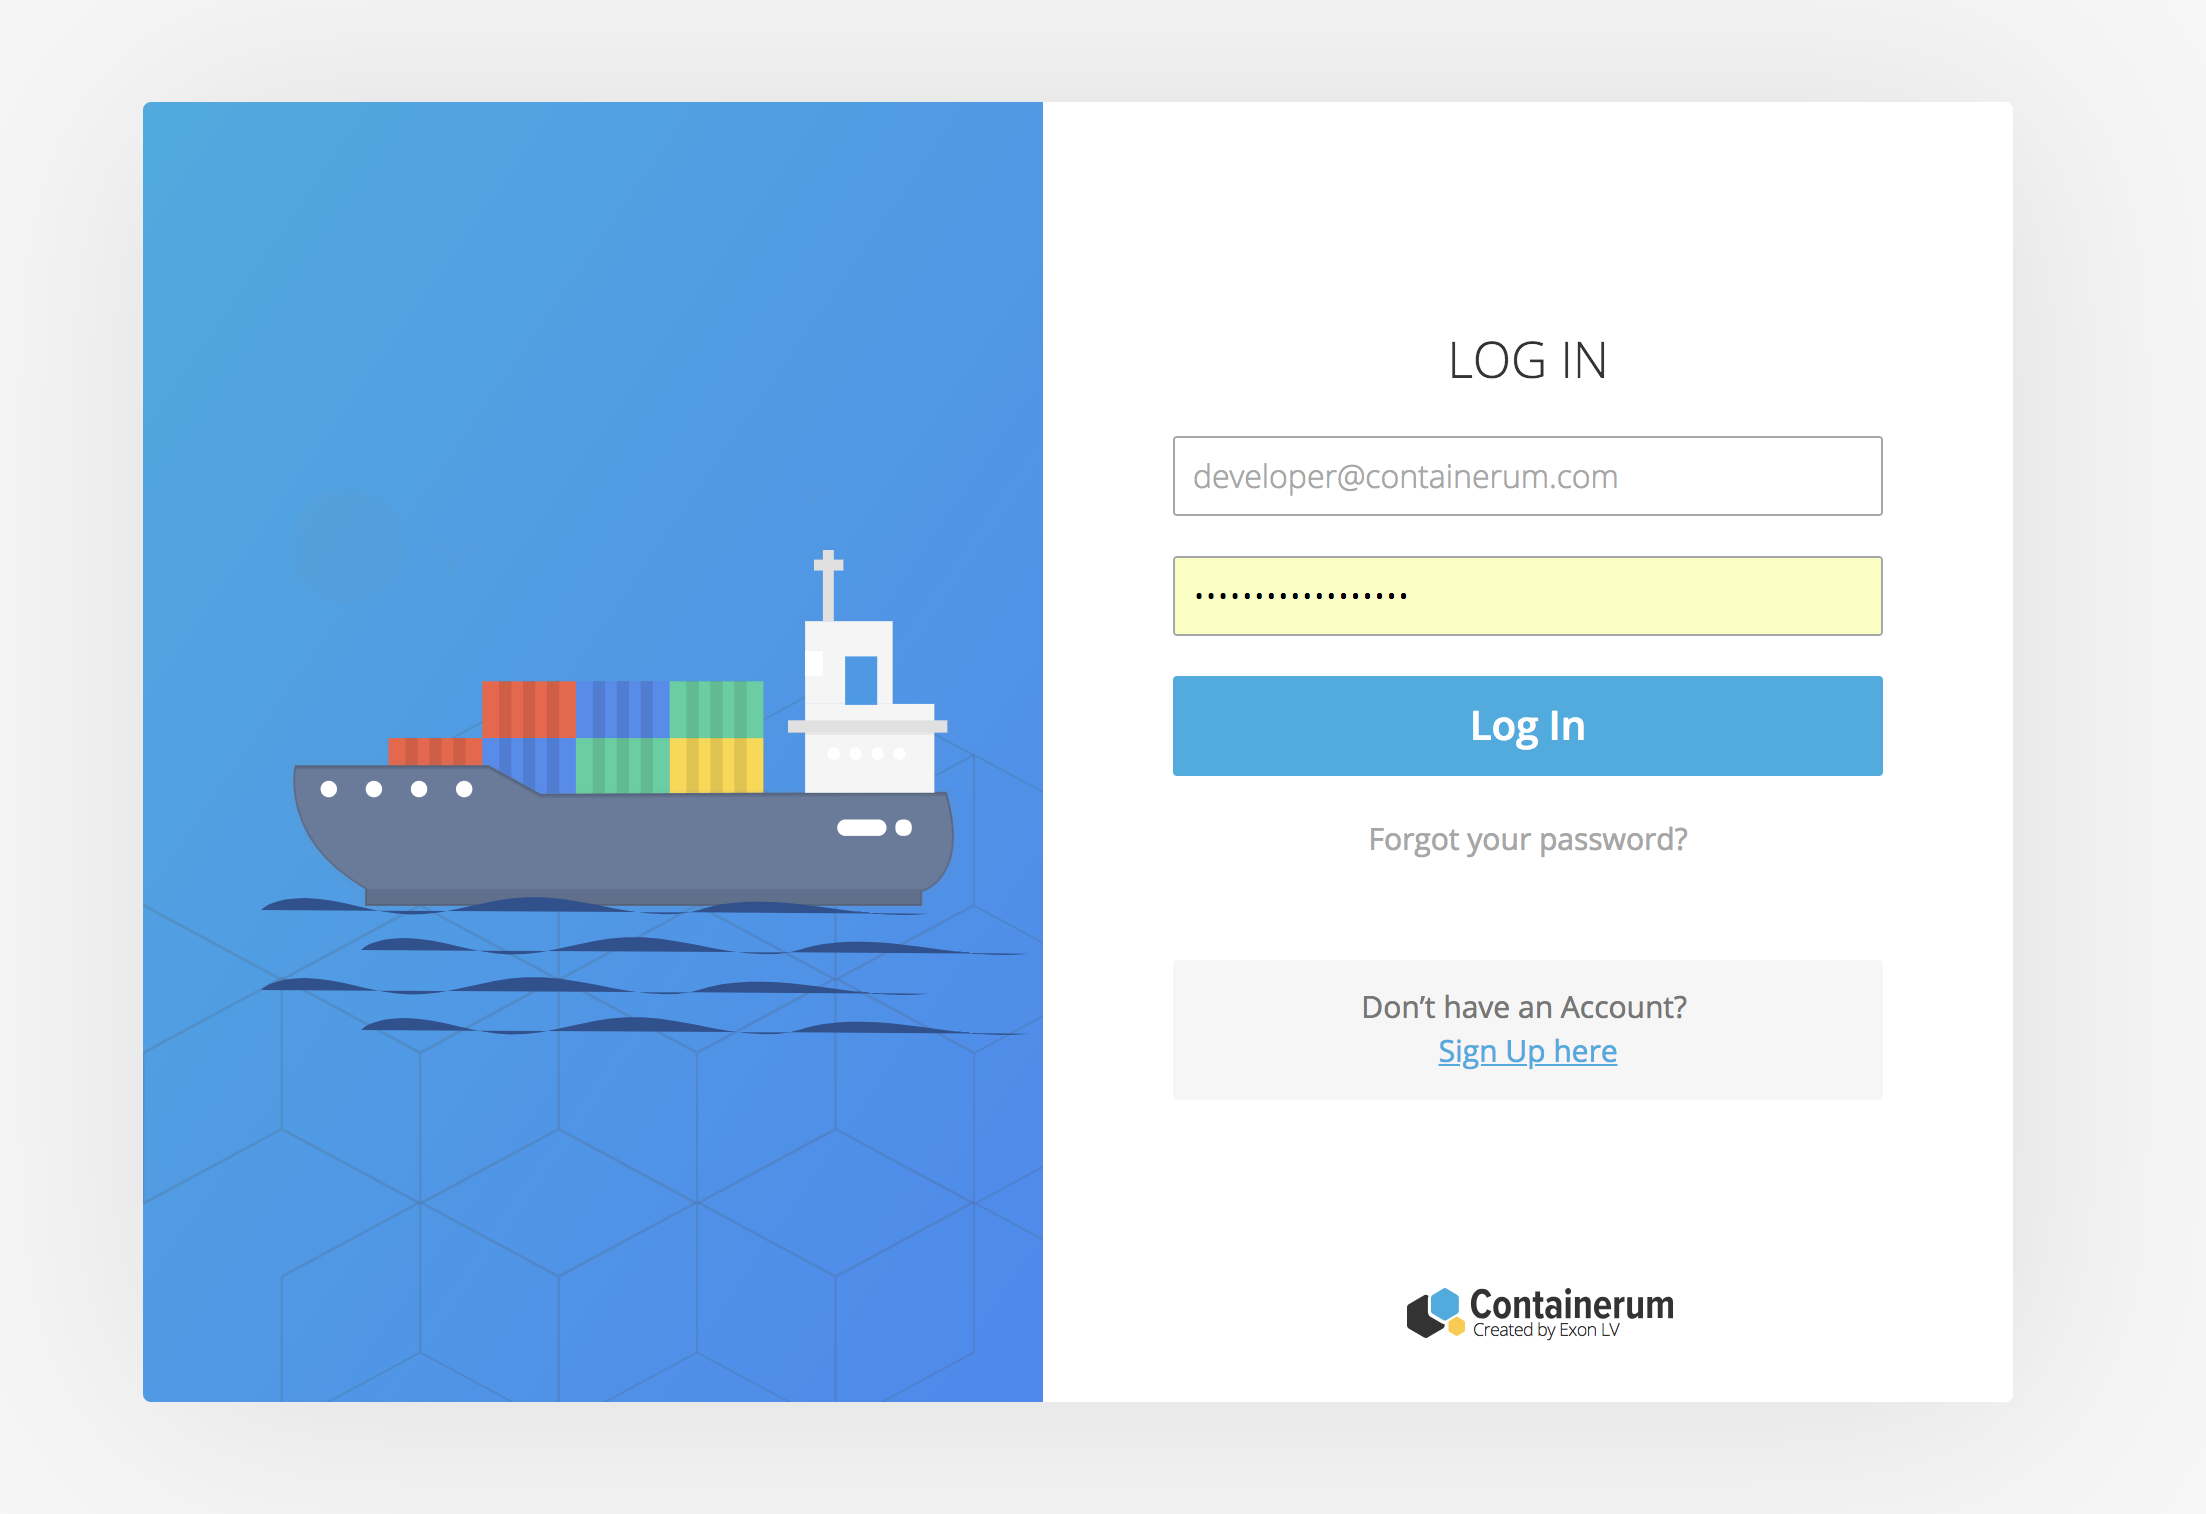 How to deploy Kubernetes and Containerum on Digital Ocean